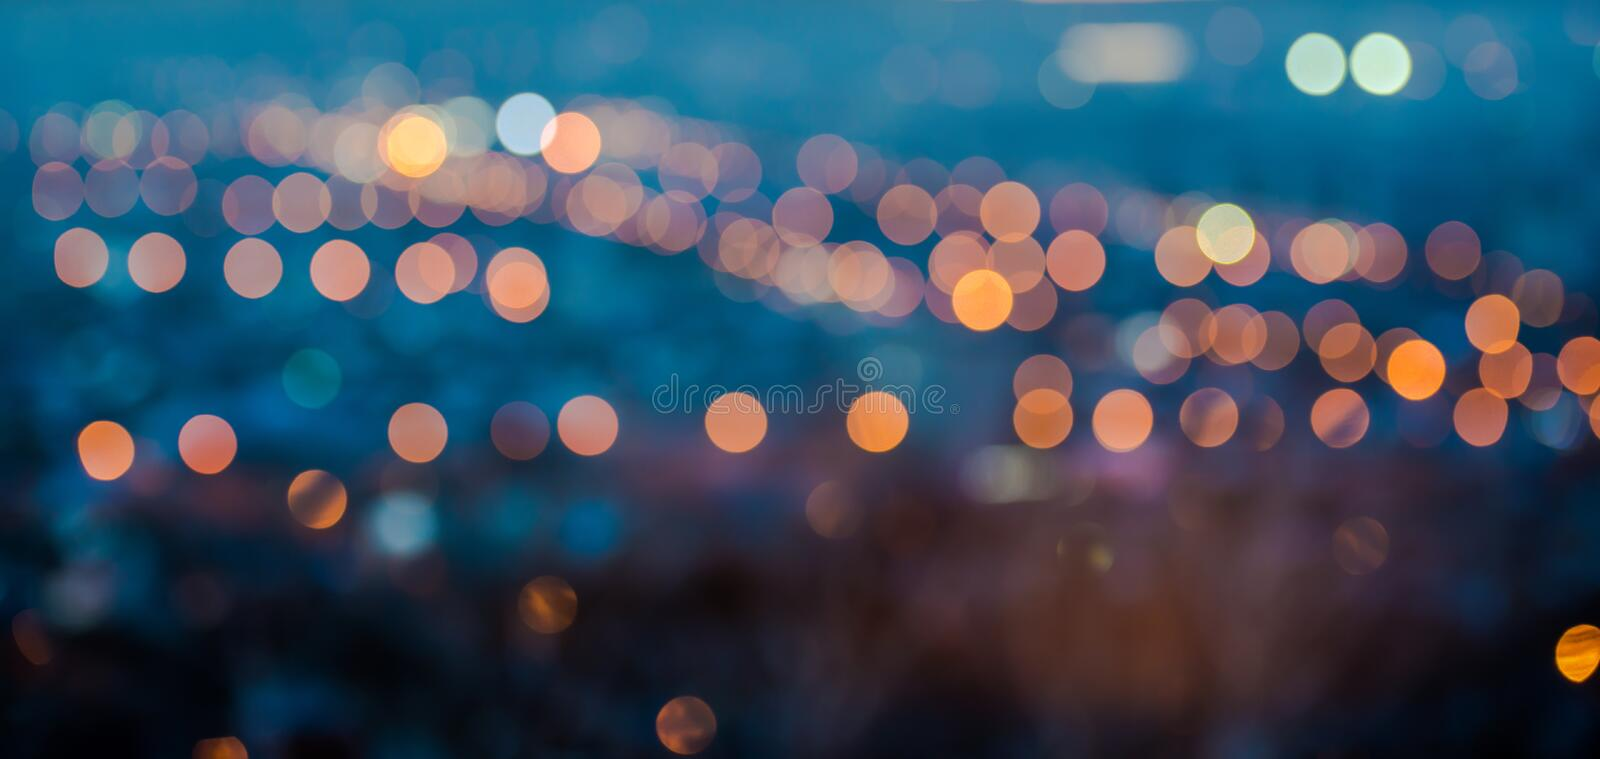 City blurring lights abstract circular bokeh on blue background stock image